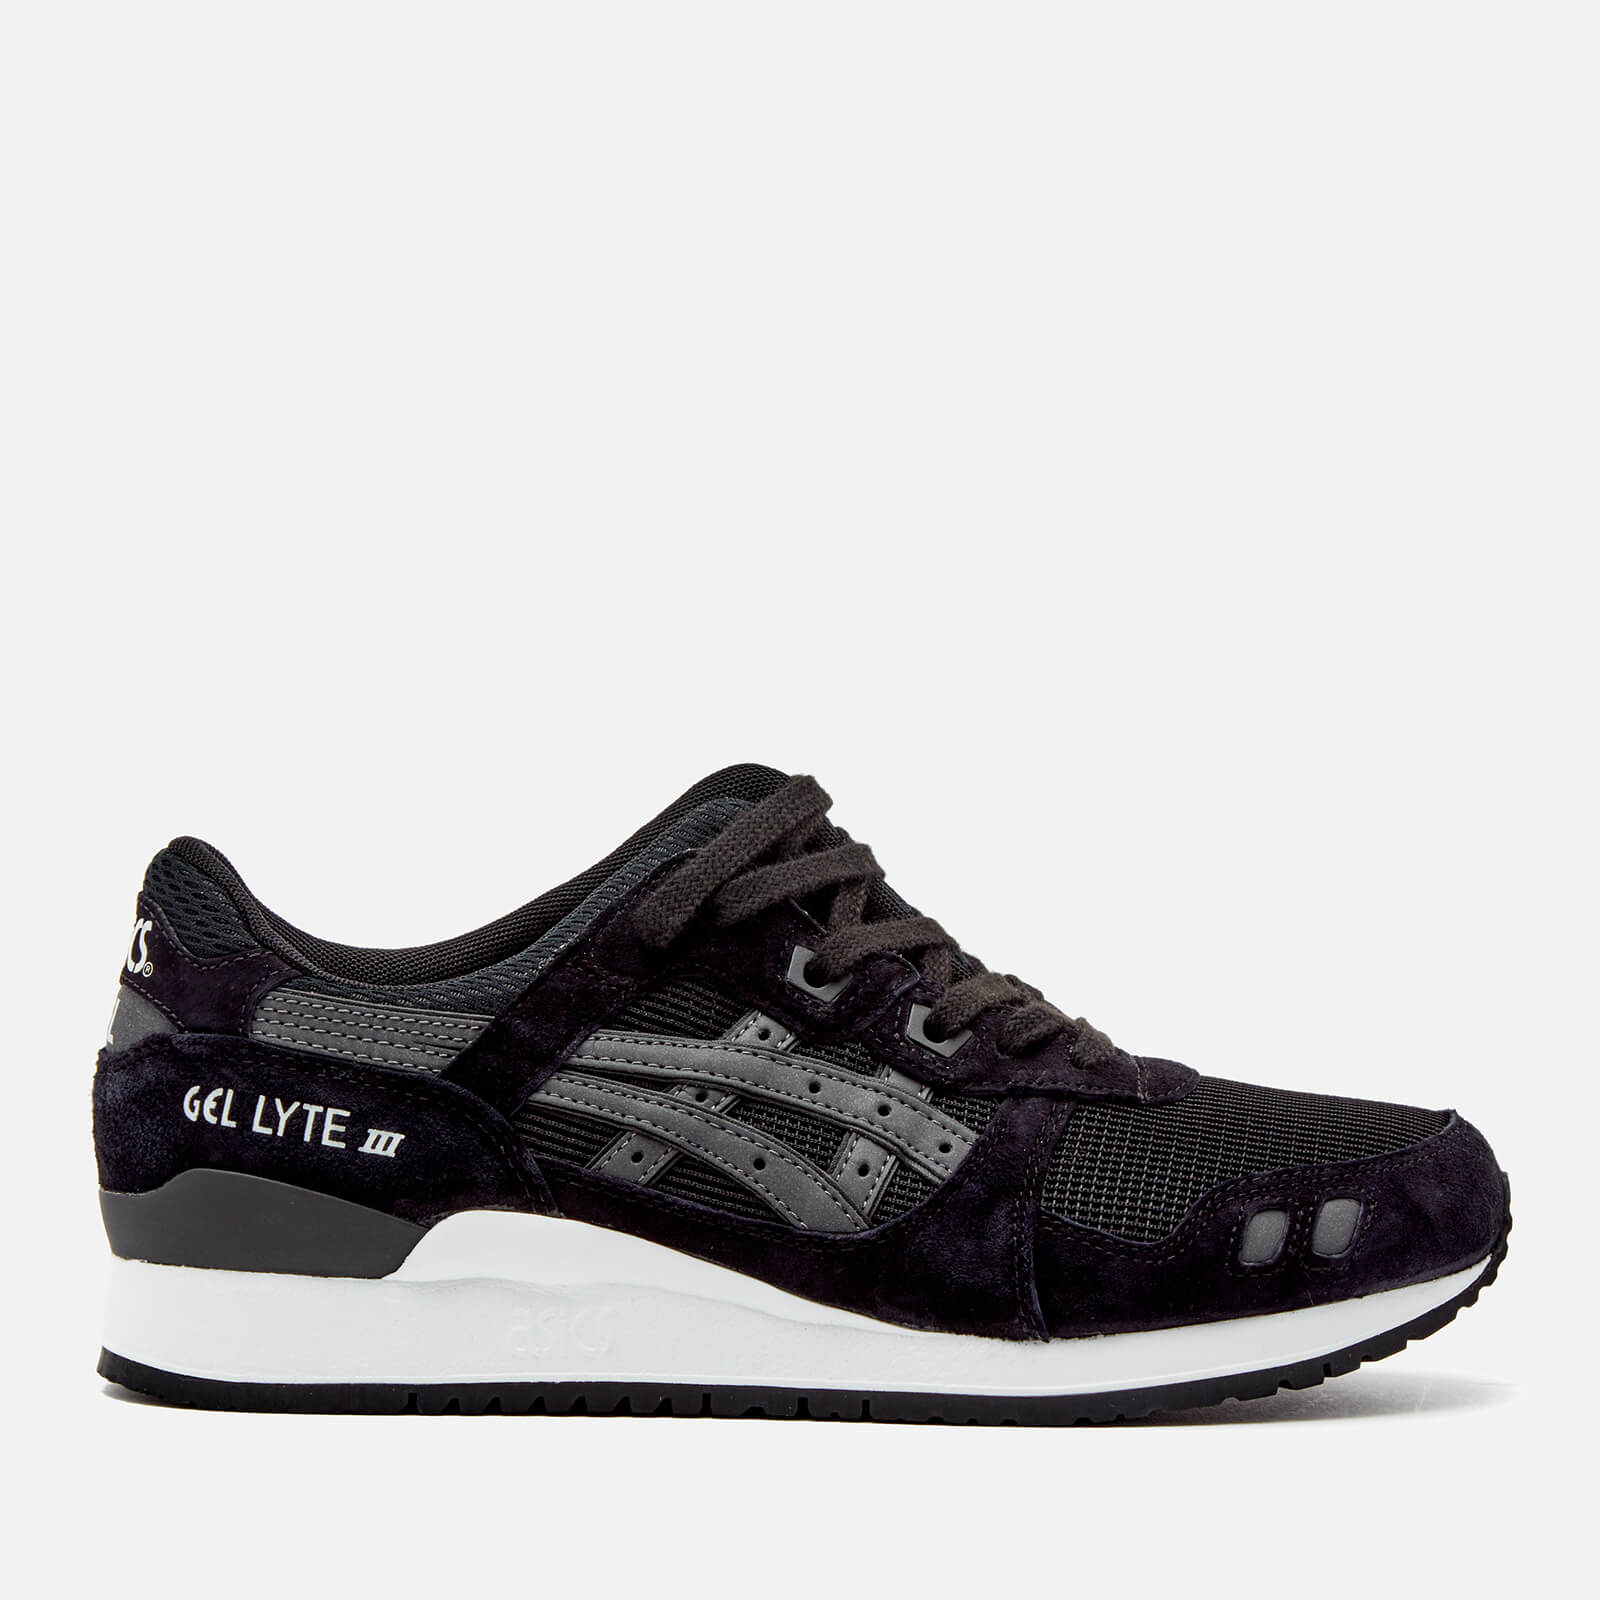 a24b4755f180 Asics Lifestyle Men s Gel-Lyte III Trainers - Black - Free UK Delivery over  £50